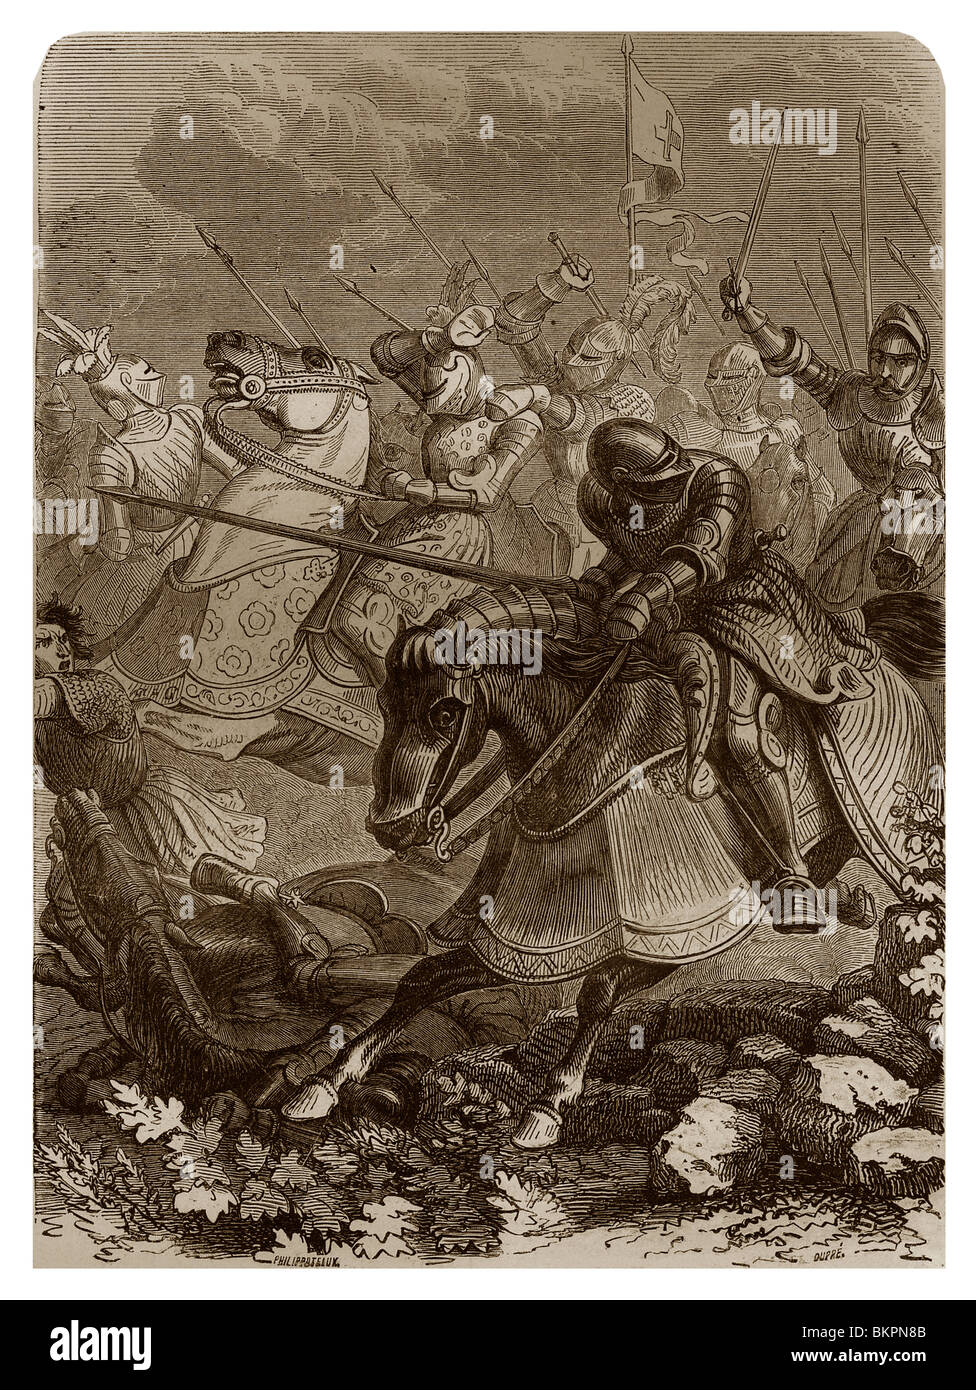 On 16th August 1513, during the Fourth Italian War, Battle of Guinegate or Battle of the Spurs. - Stock Image